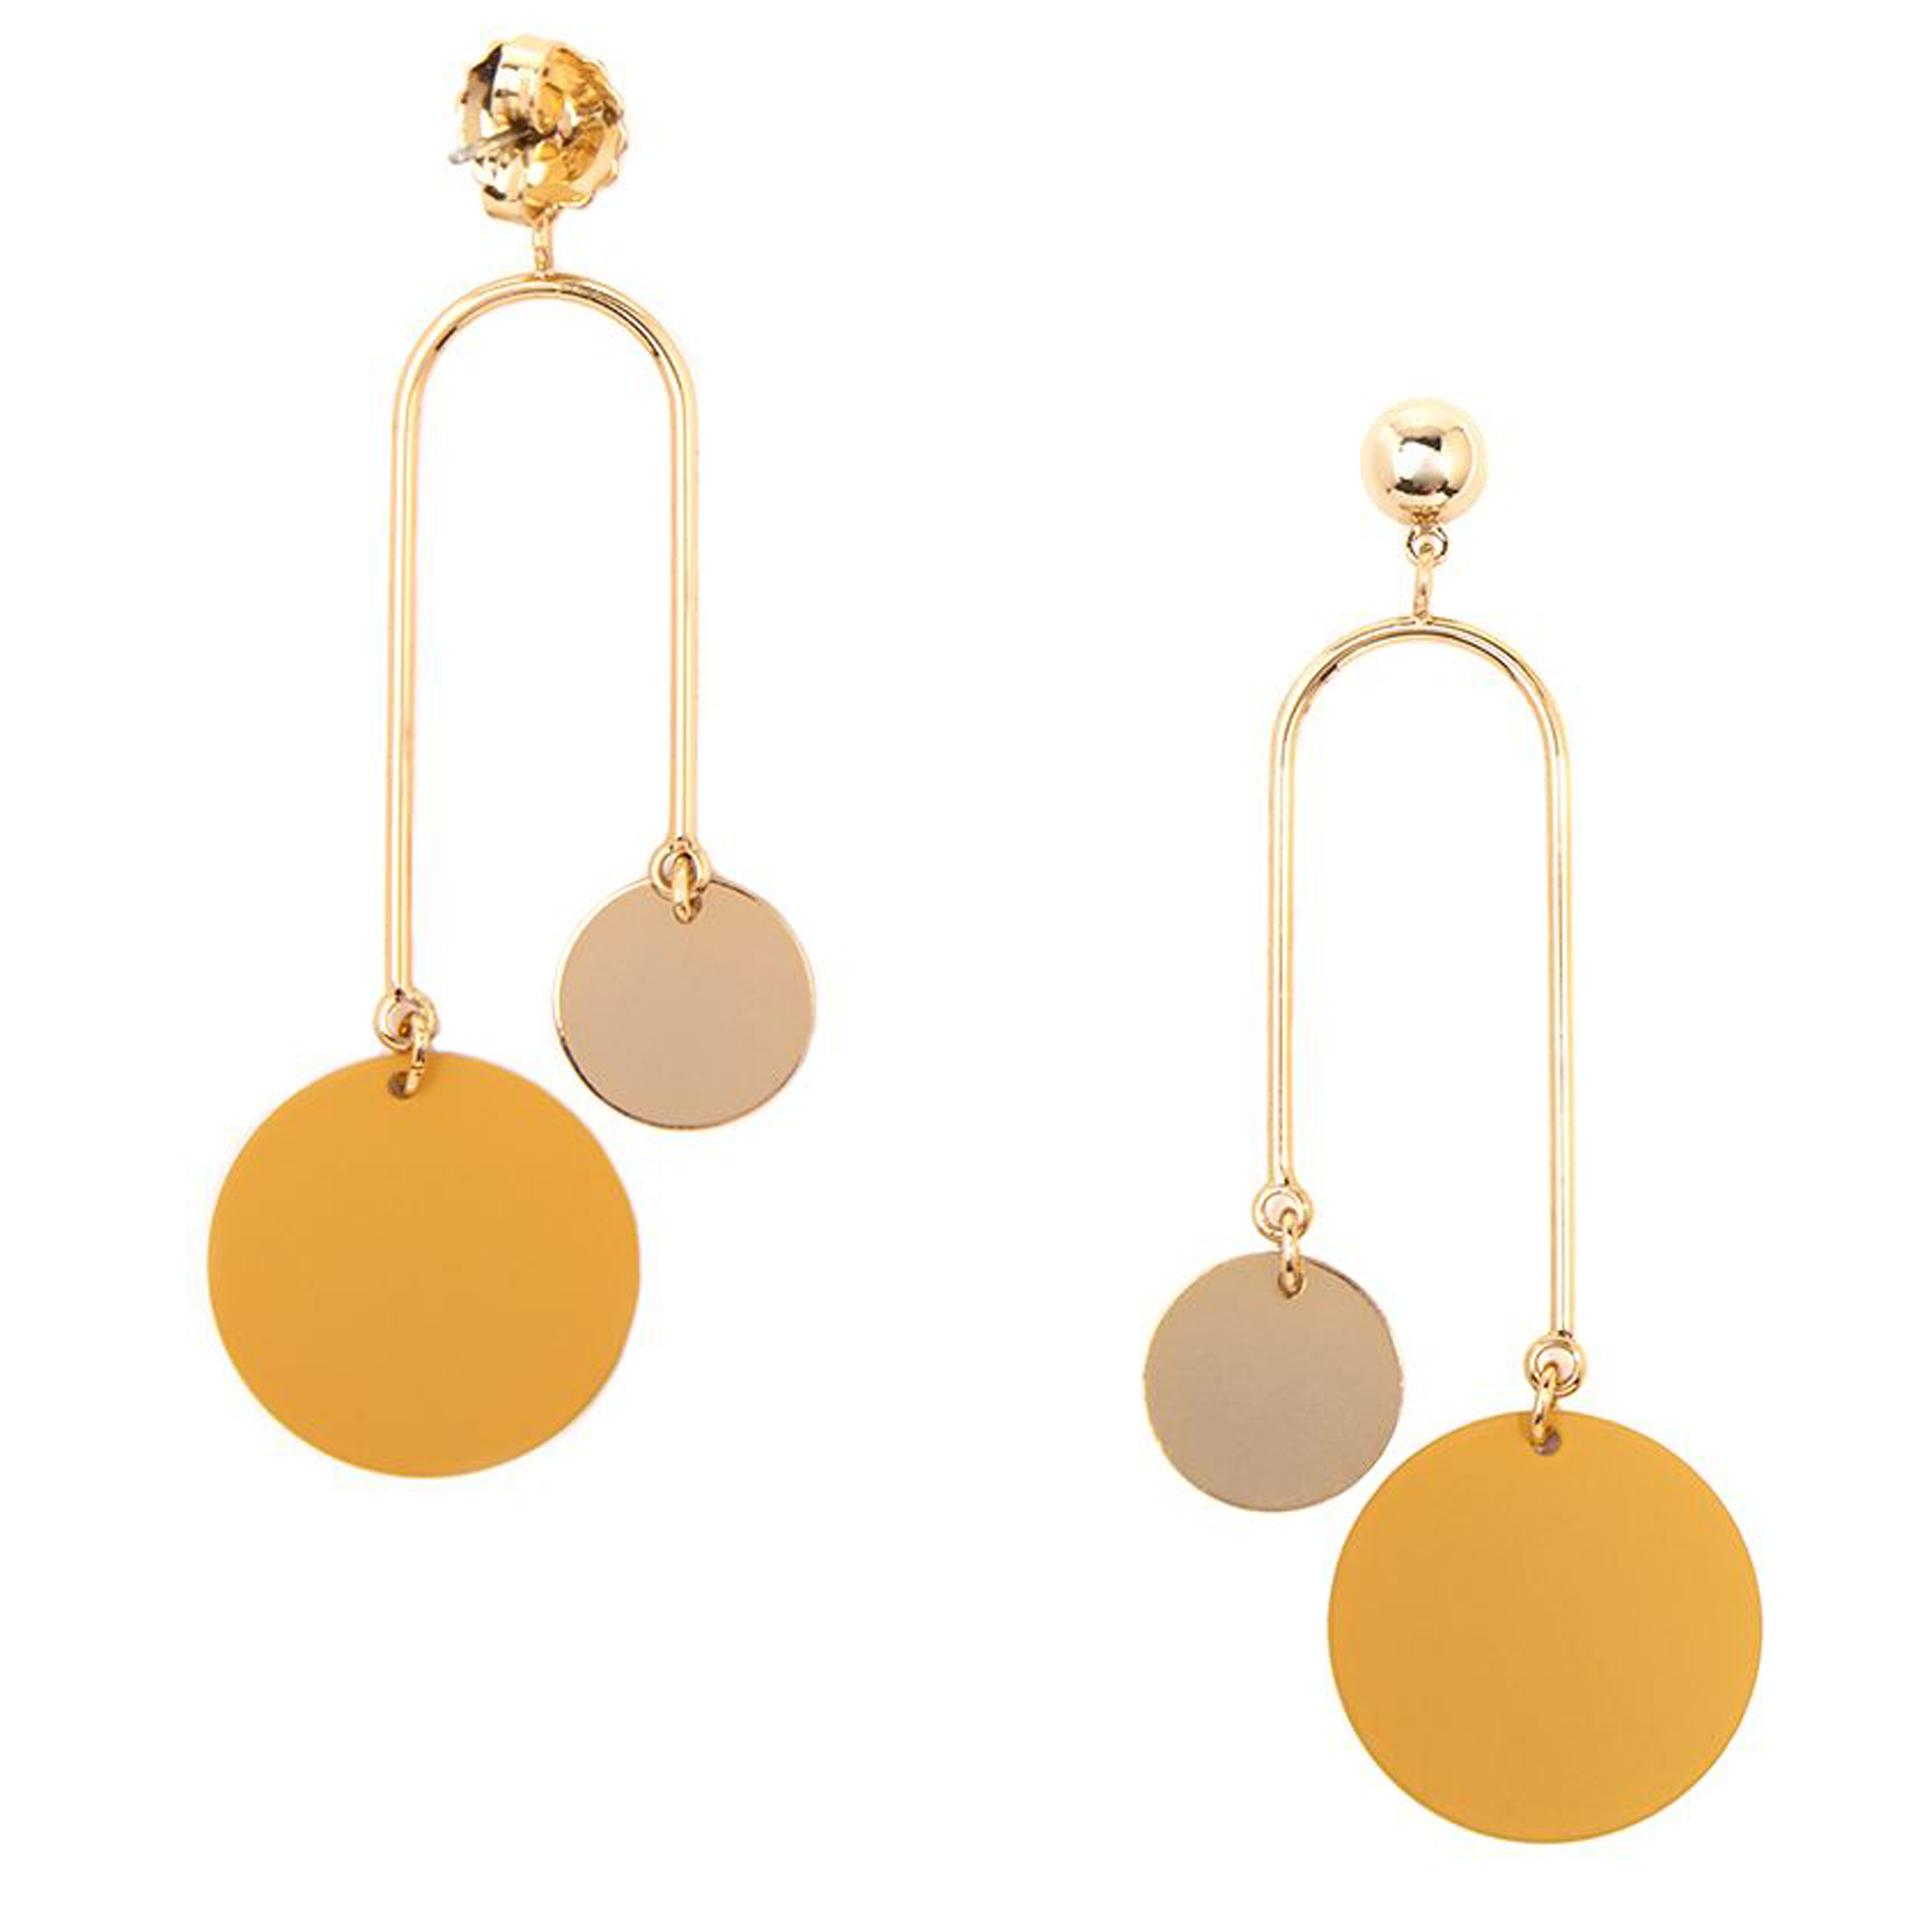 Asymmetrical Painted Metal Drop Earring (3 Colors)